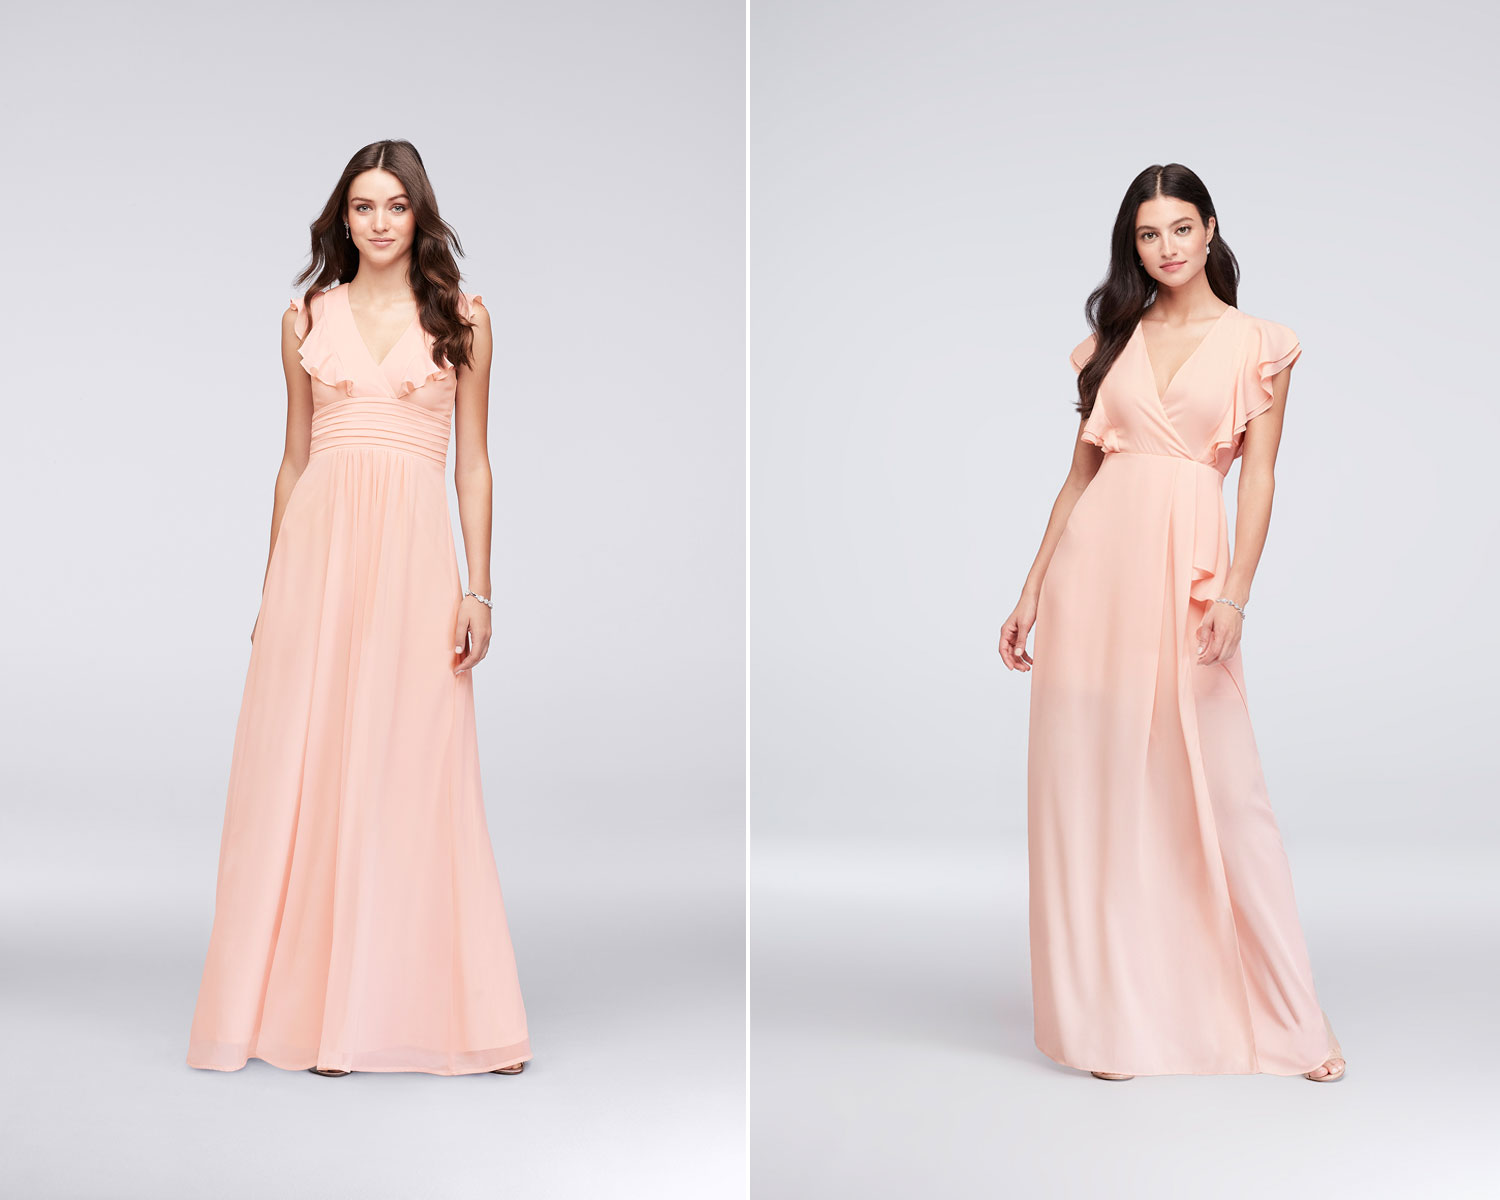 Davids bridal to release bridesmaid dresses for under 100 photo courtesy of davids bridal ombrellifo Image collections